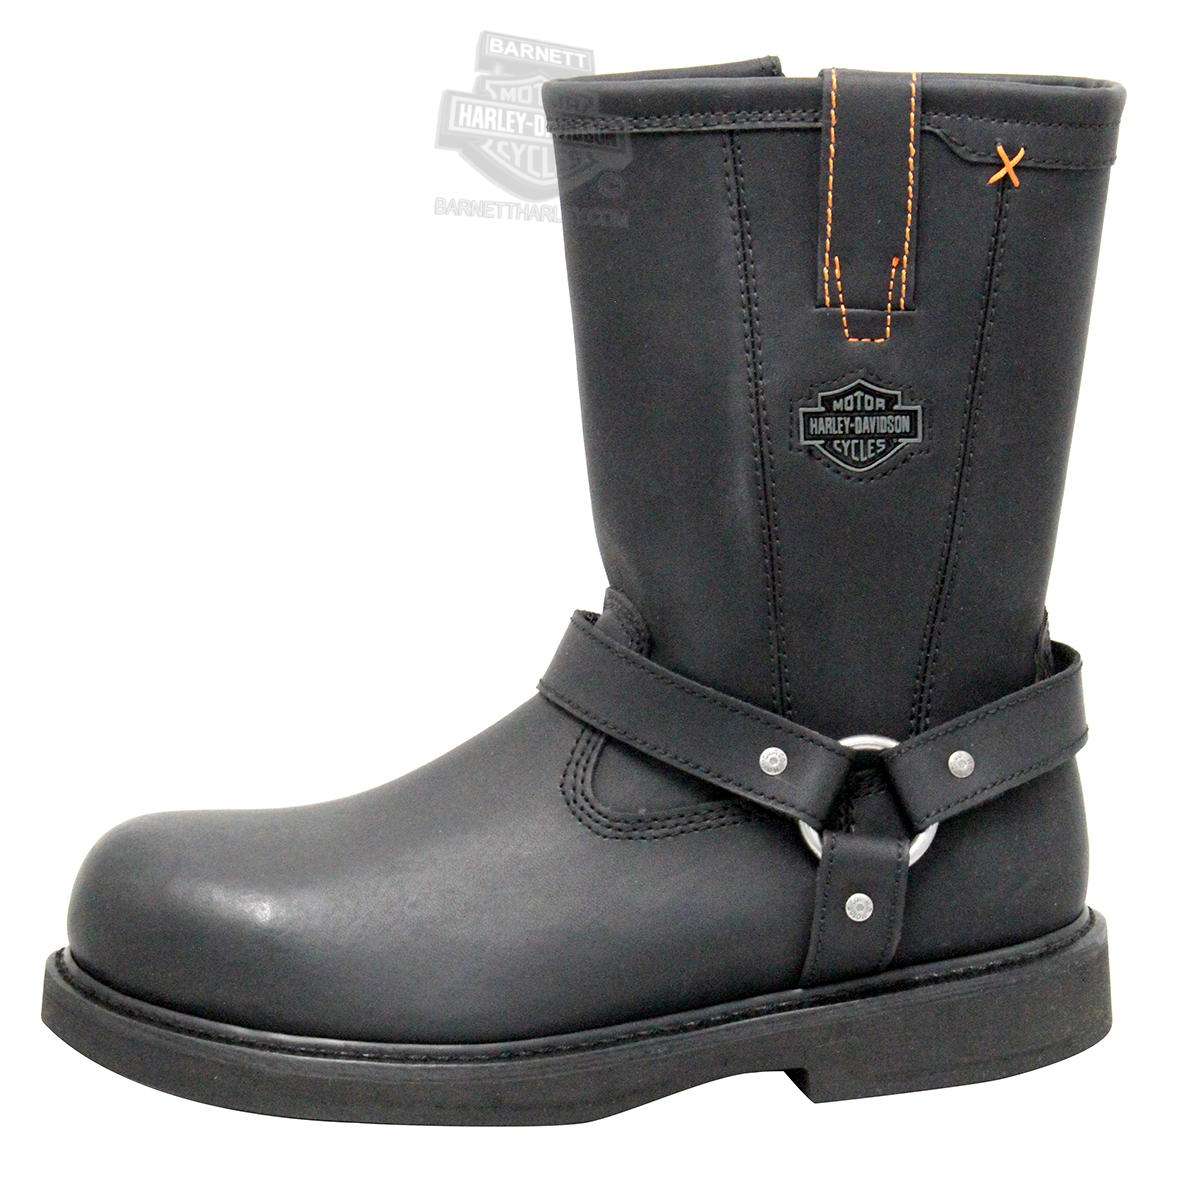 95328 harley davidson 174 mens bill steel toe black mid cut